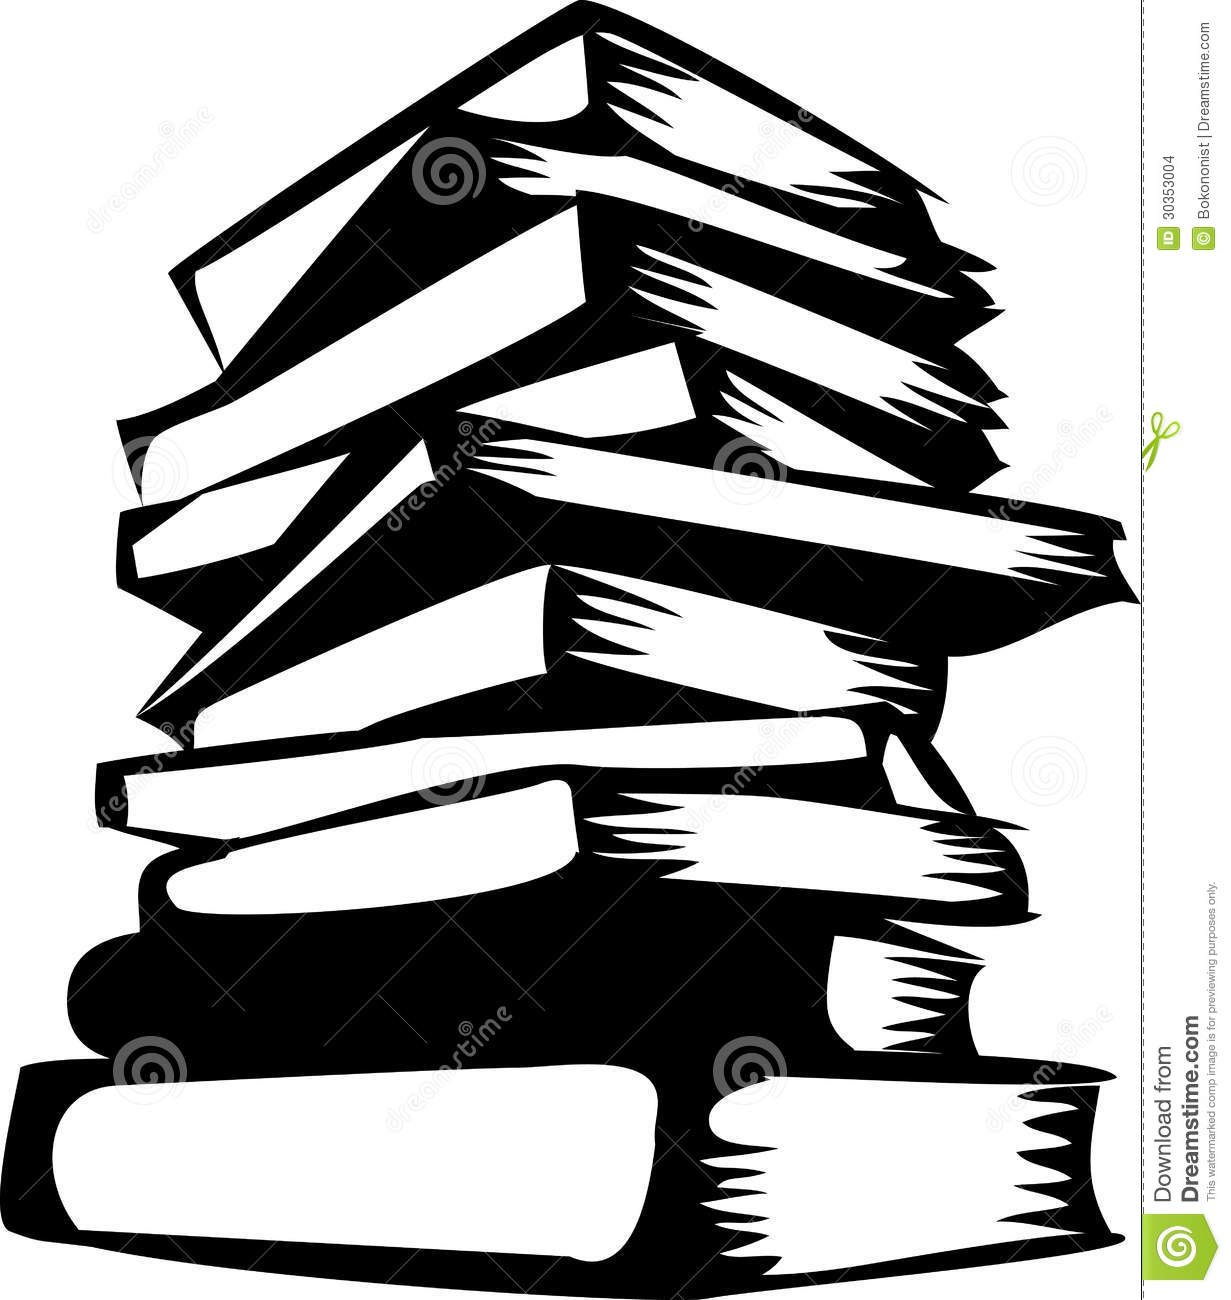 Stack Of Books Clip Art Black And White   Clipart Panda   Free Clipart